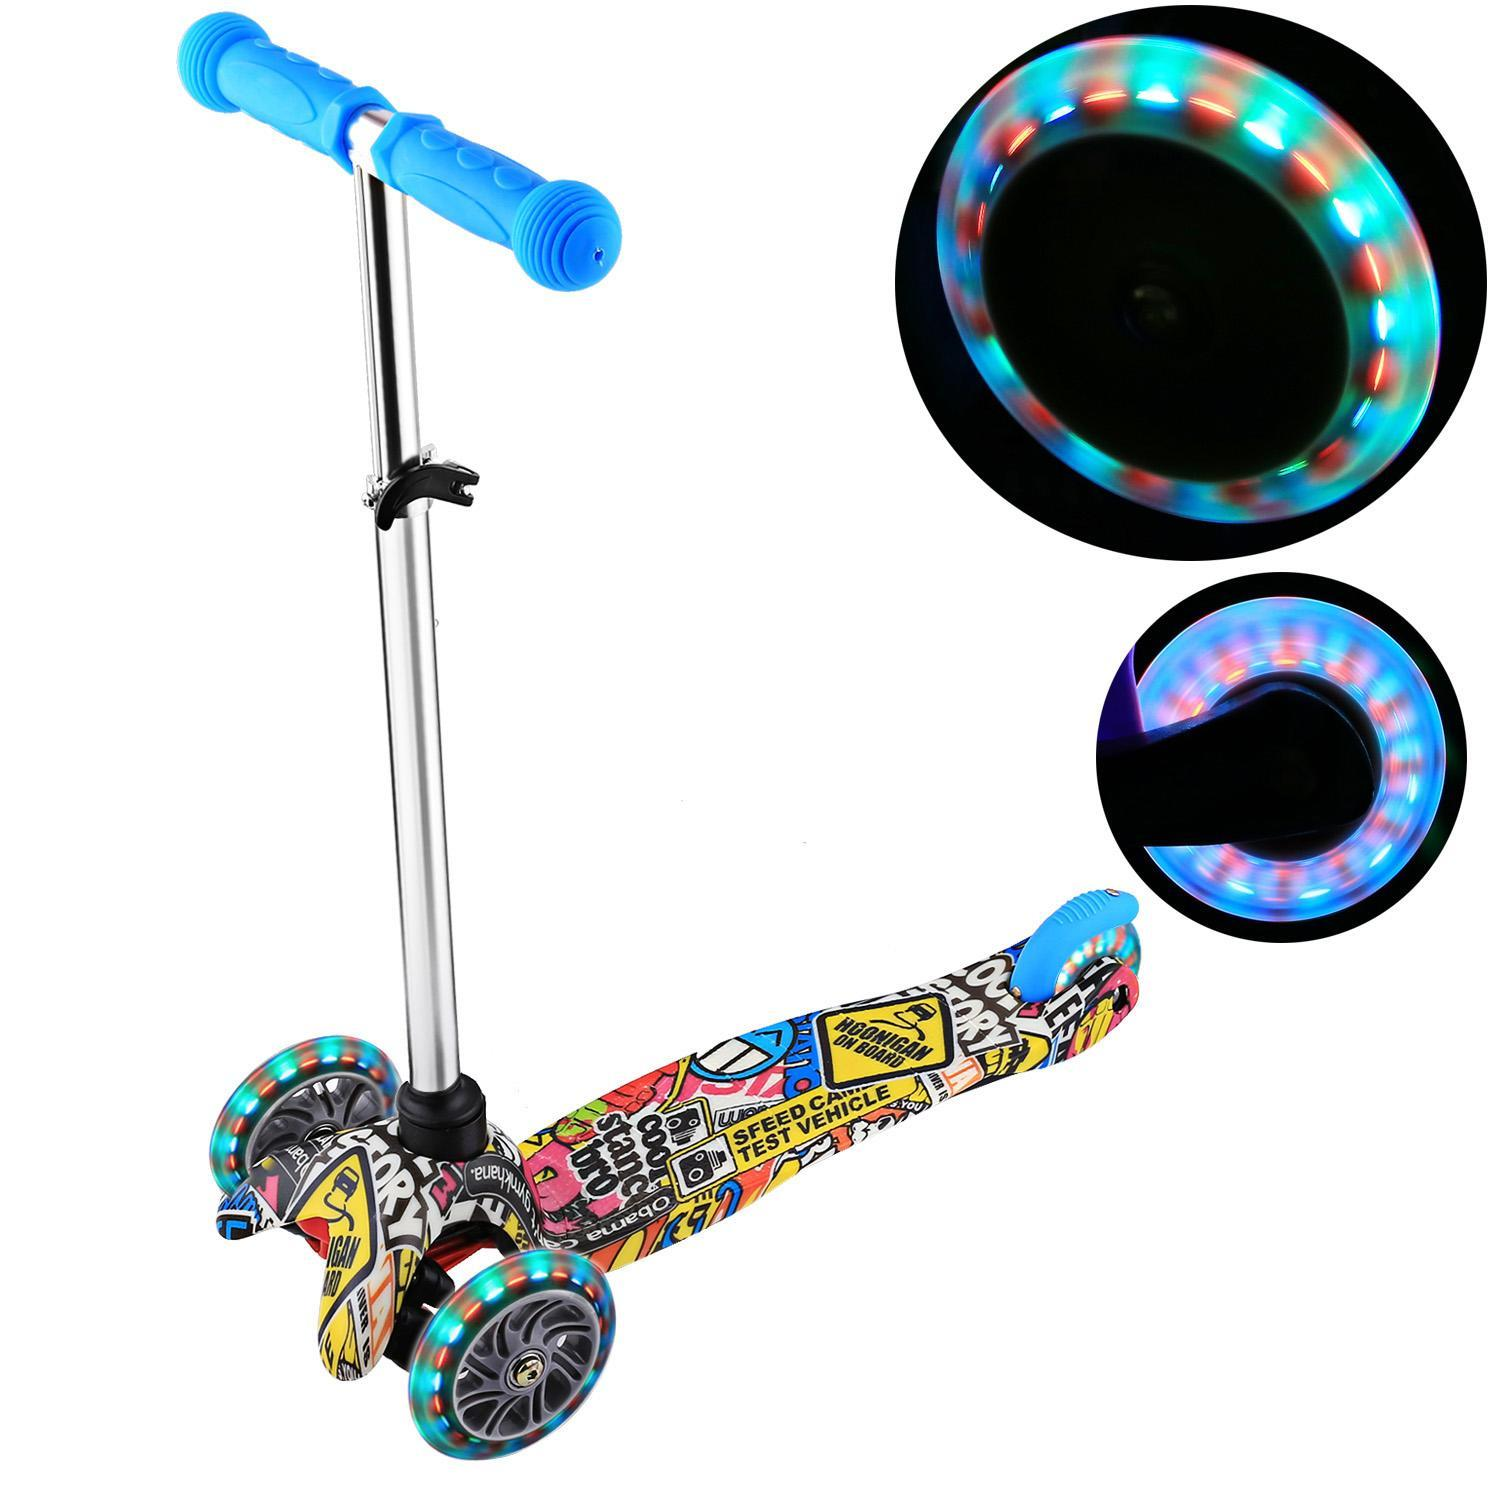 Kick Scooter for Kids 3 Wheel Scooter, 4 Adjustable Height, Lean to Steer with PU LED Light Up Wheels for Children from... by Generic